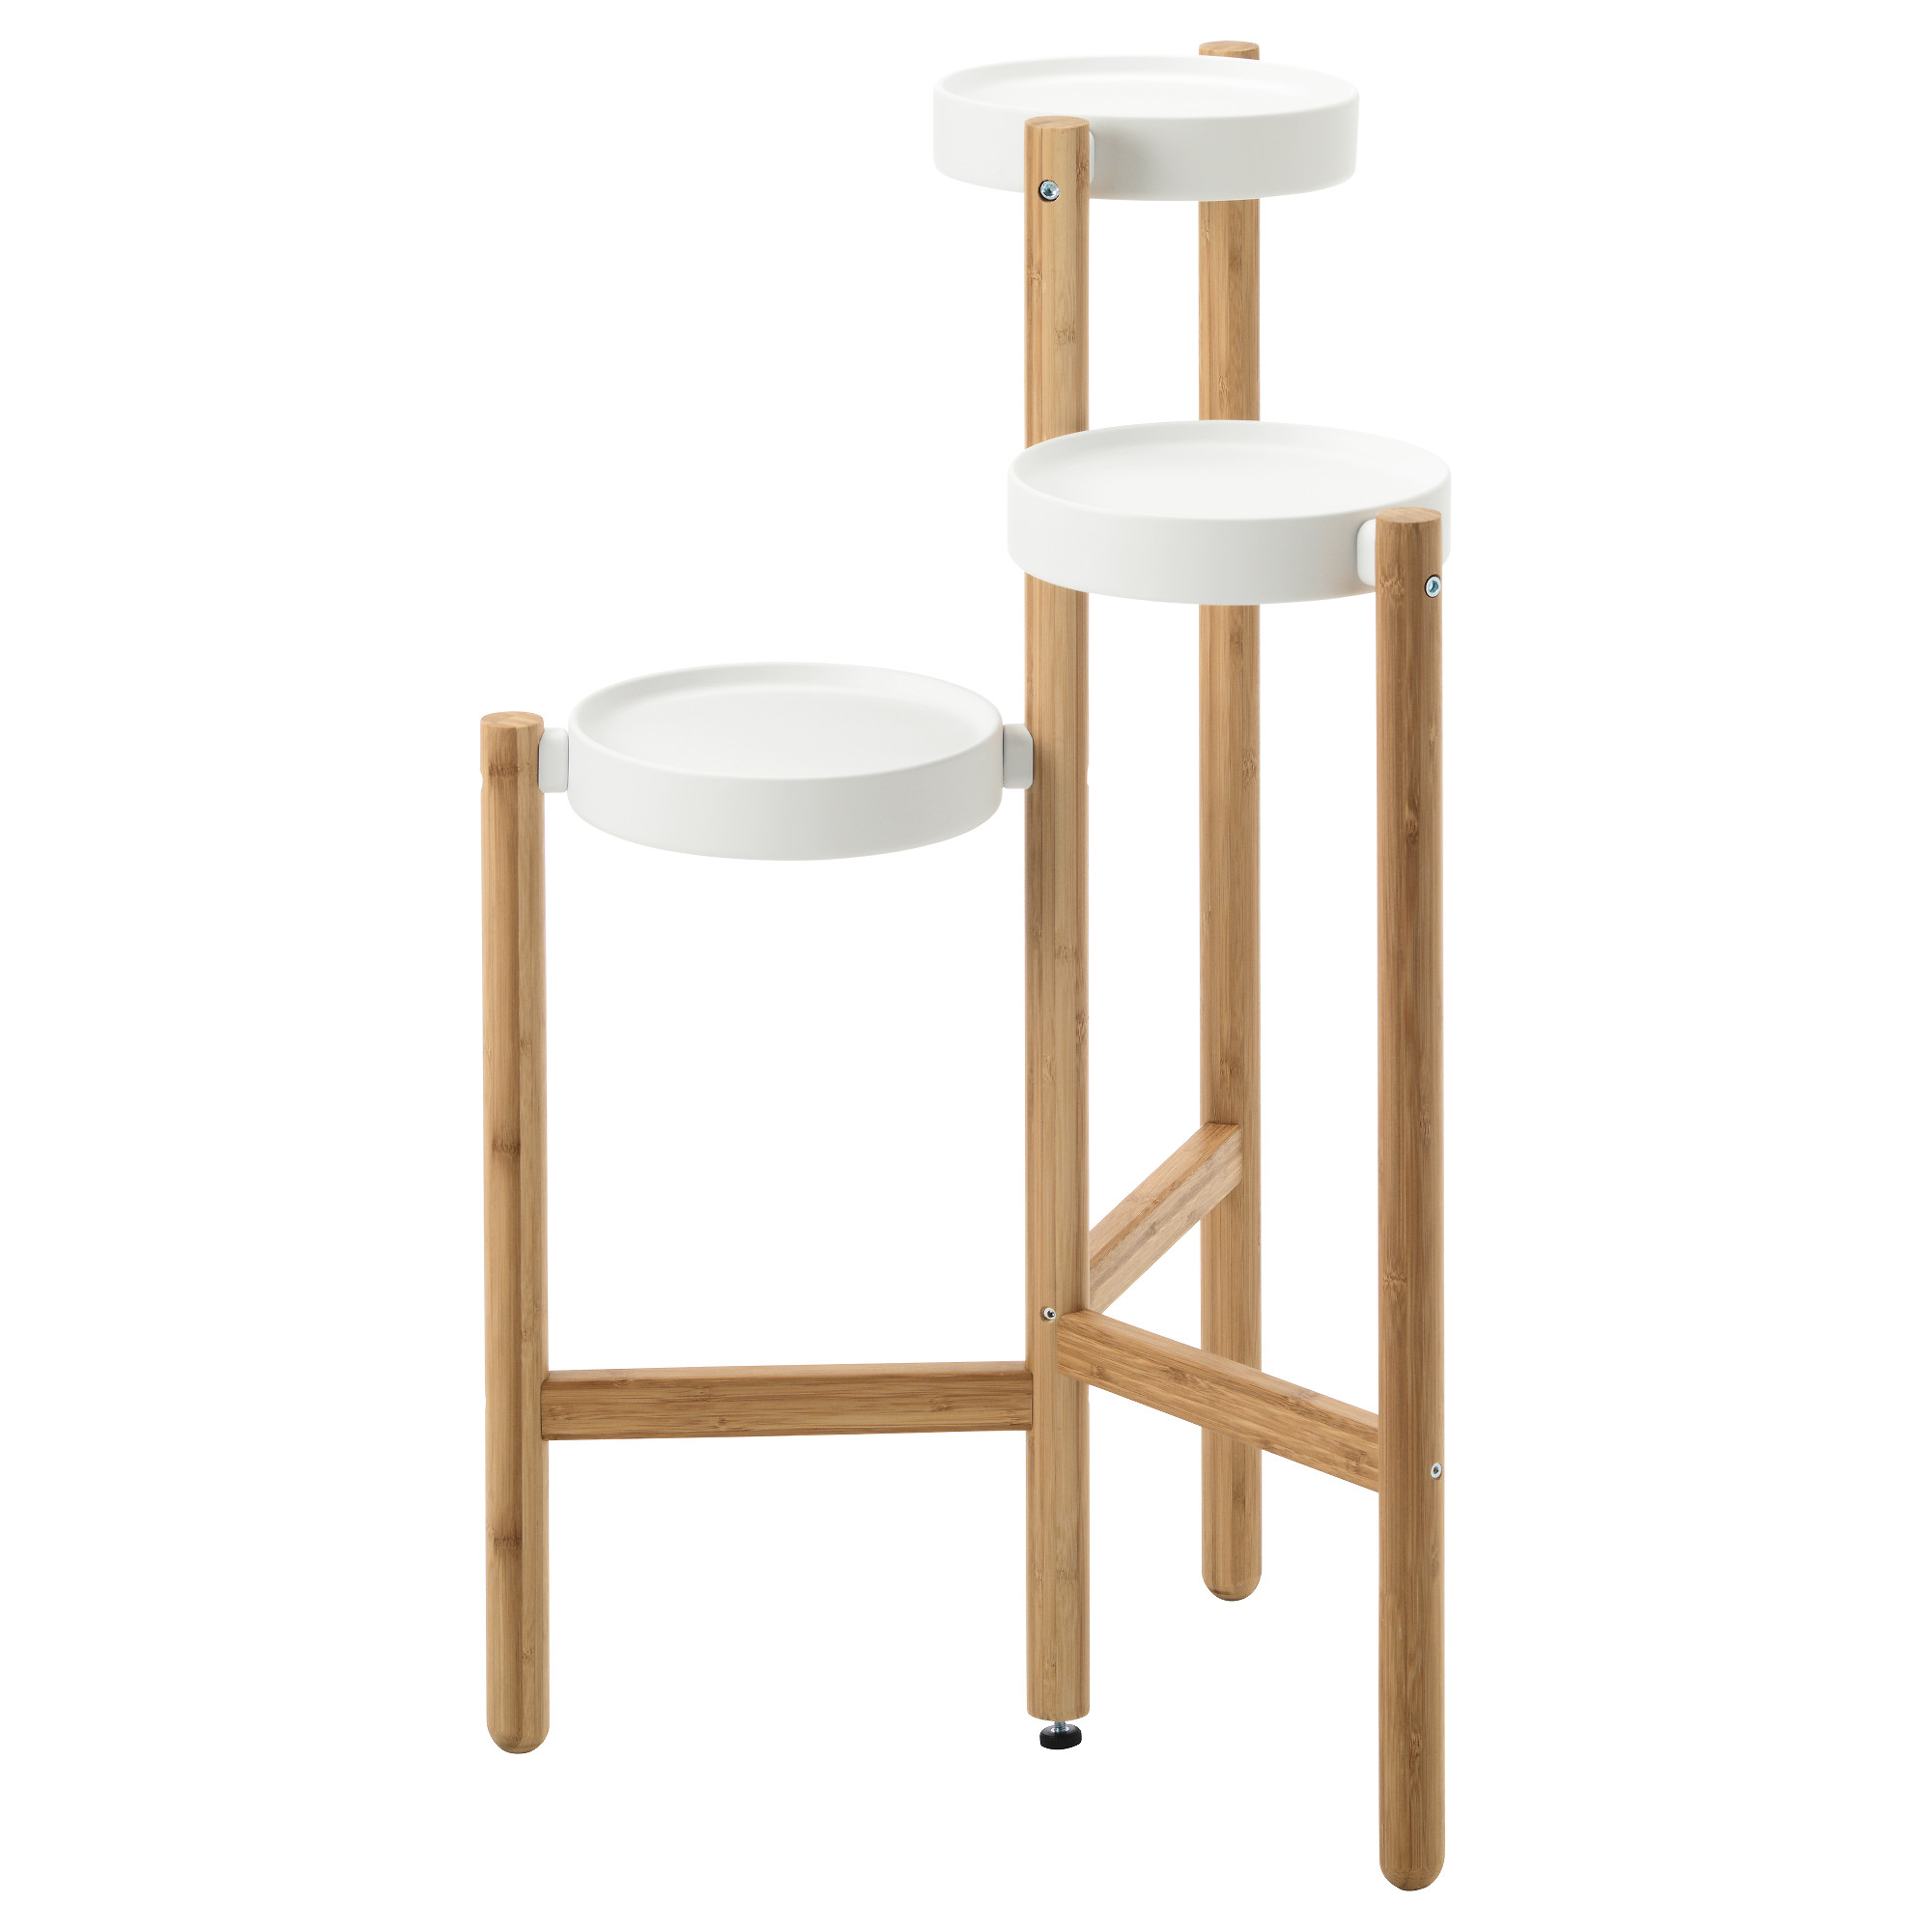 60294962 Satsumas Plant Stands - Movers IKEA khmer in phnom penh cambodia